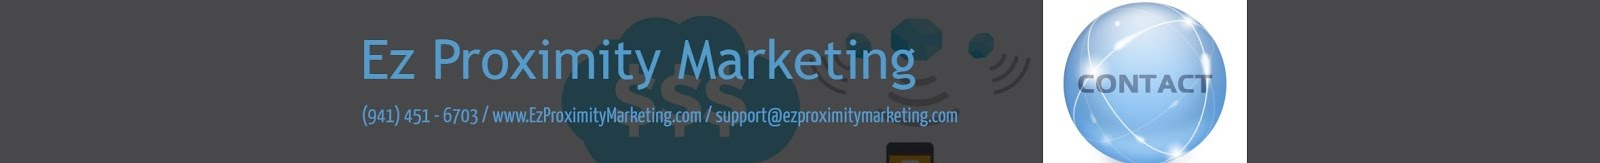 Ez Proximity Marketing